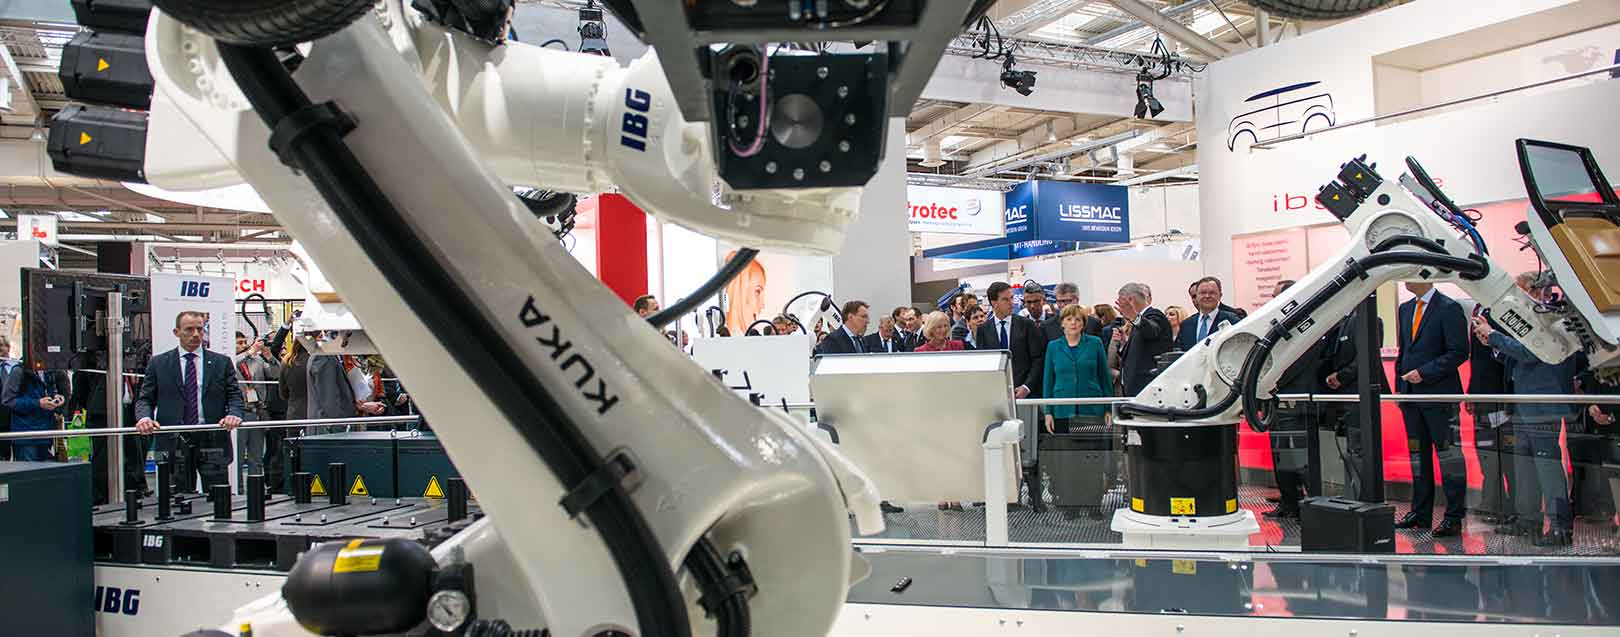 India to pitch manufacturing in Hannover 2016